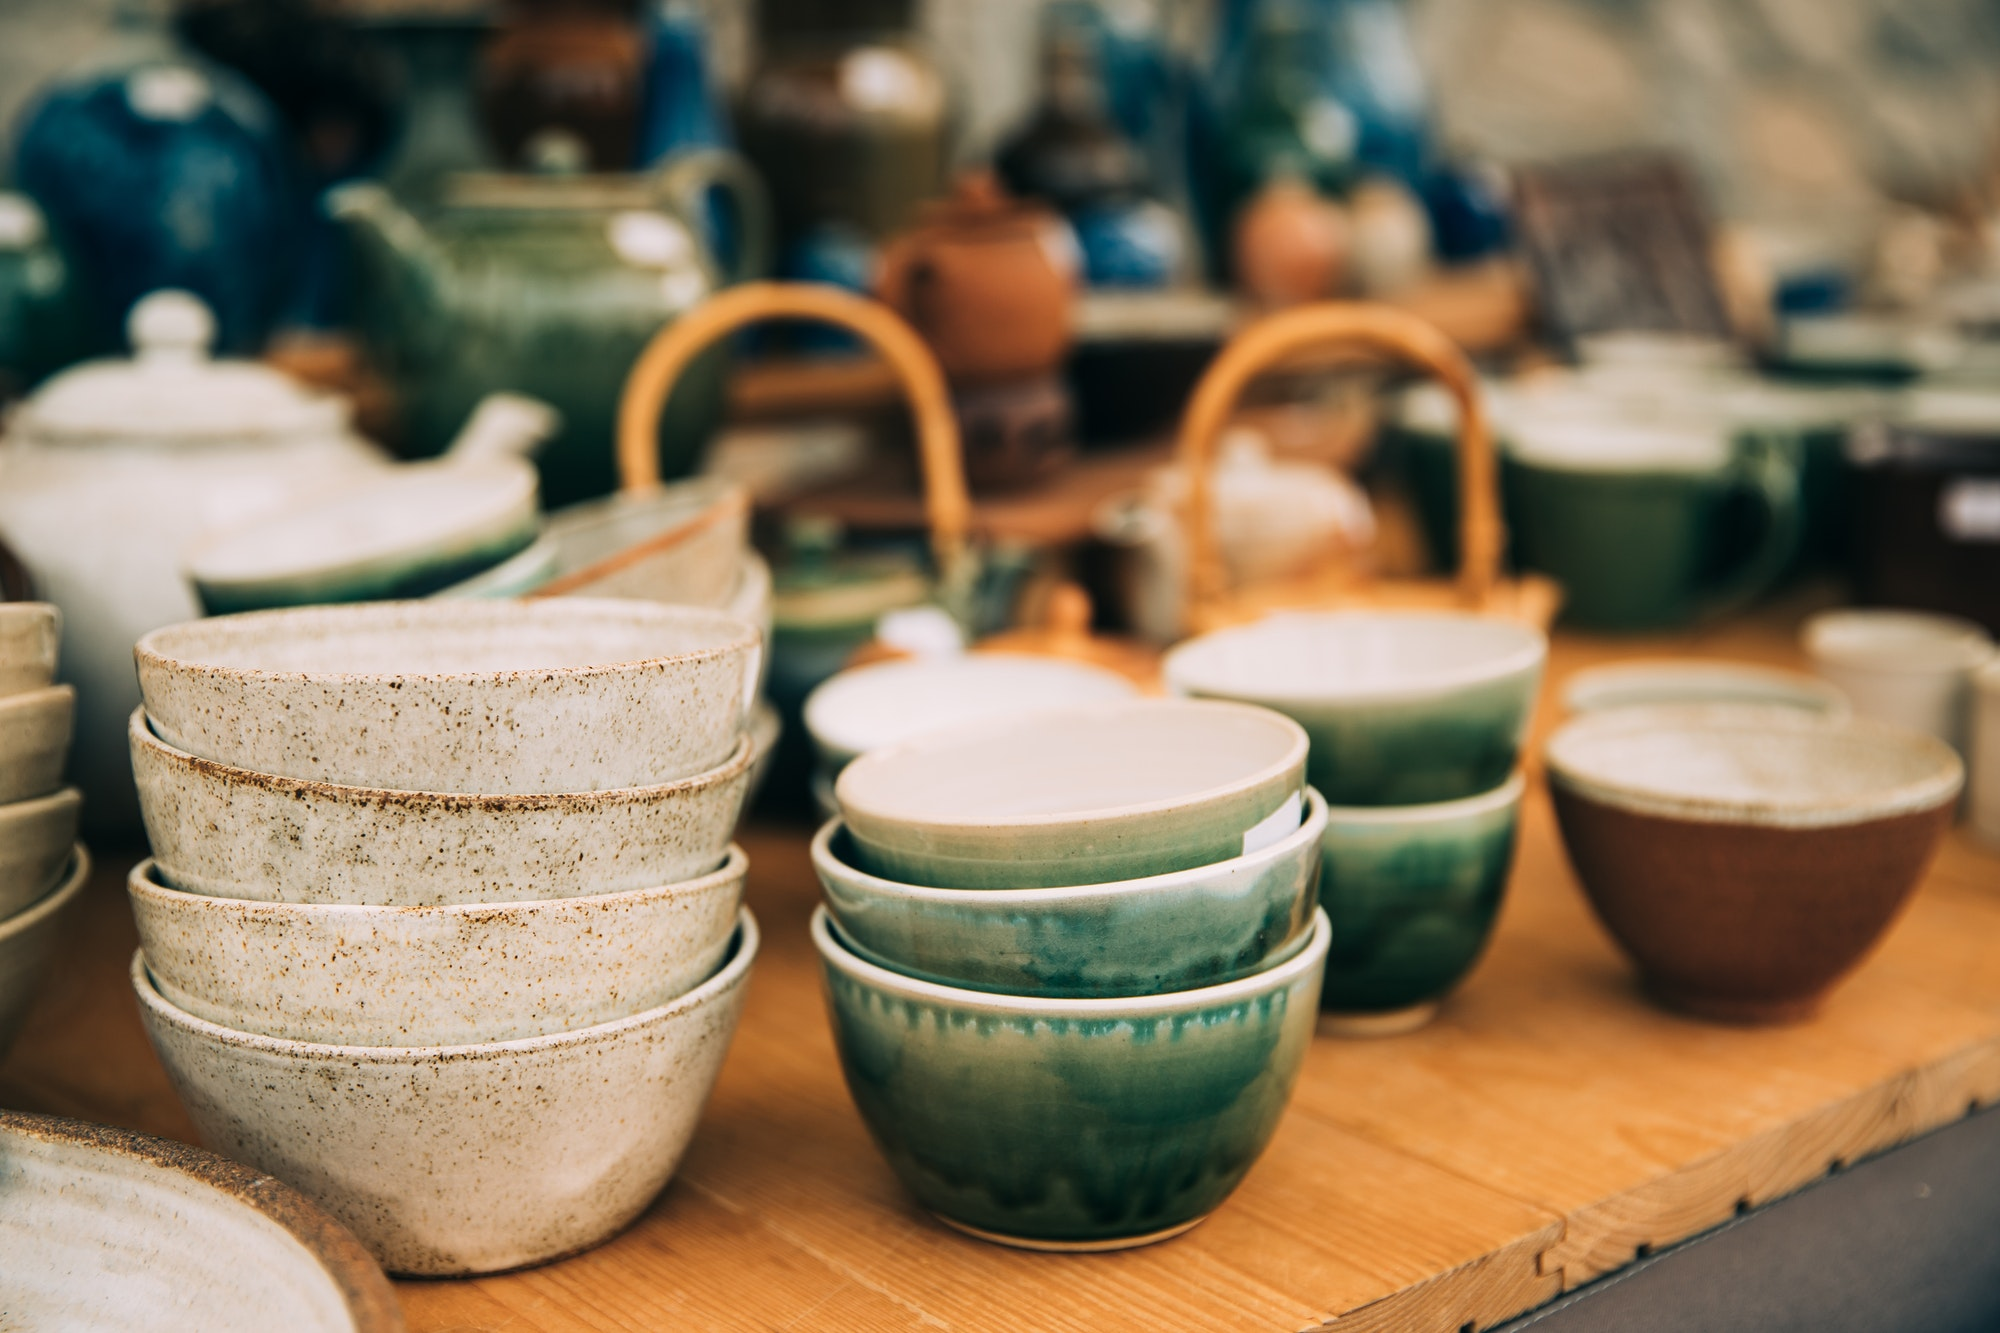 Ceramic Clay Crafts. Ceramic Dishware In Market. Bowls Of Differ